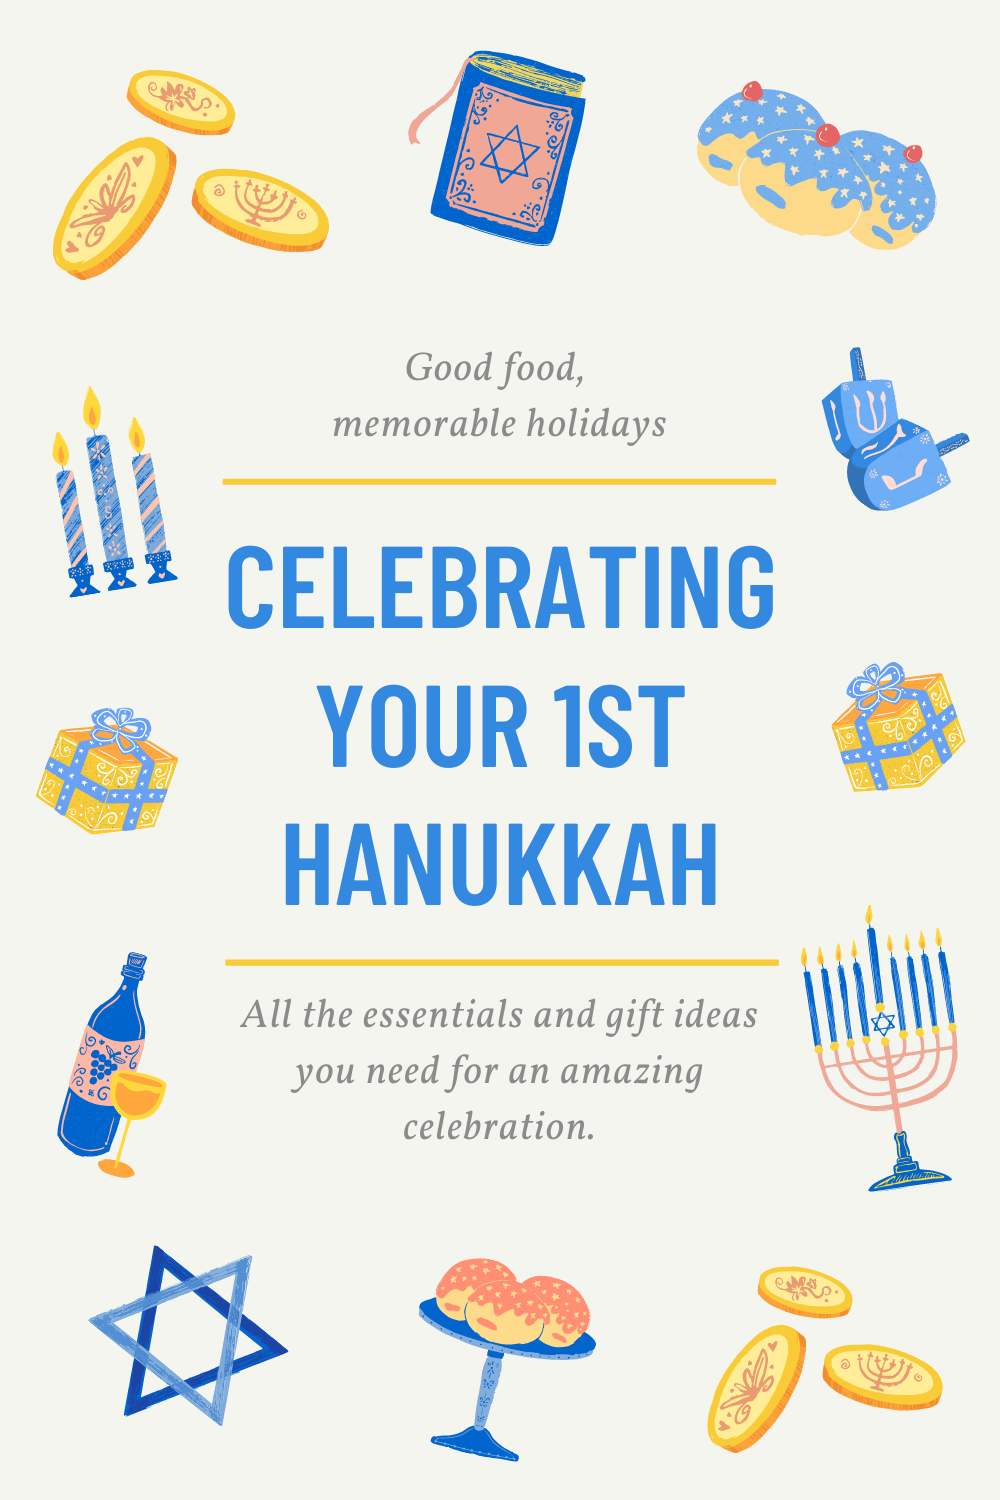 Our first Hanukkah essentials and gifts